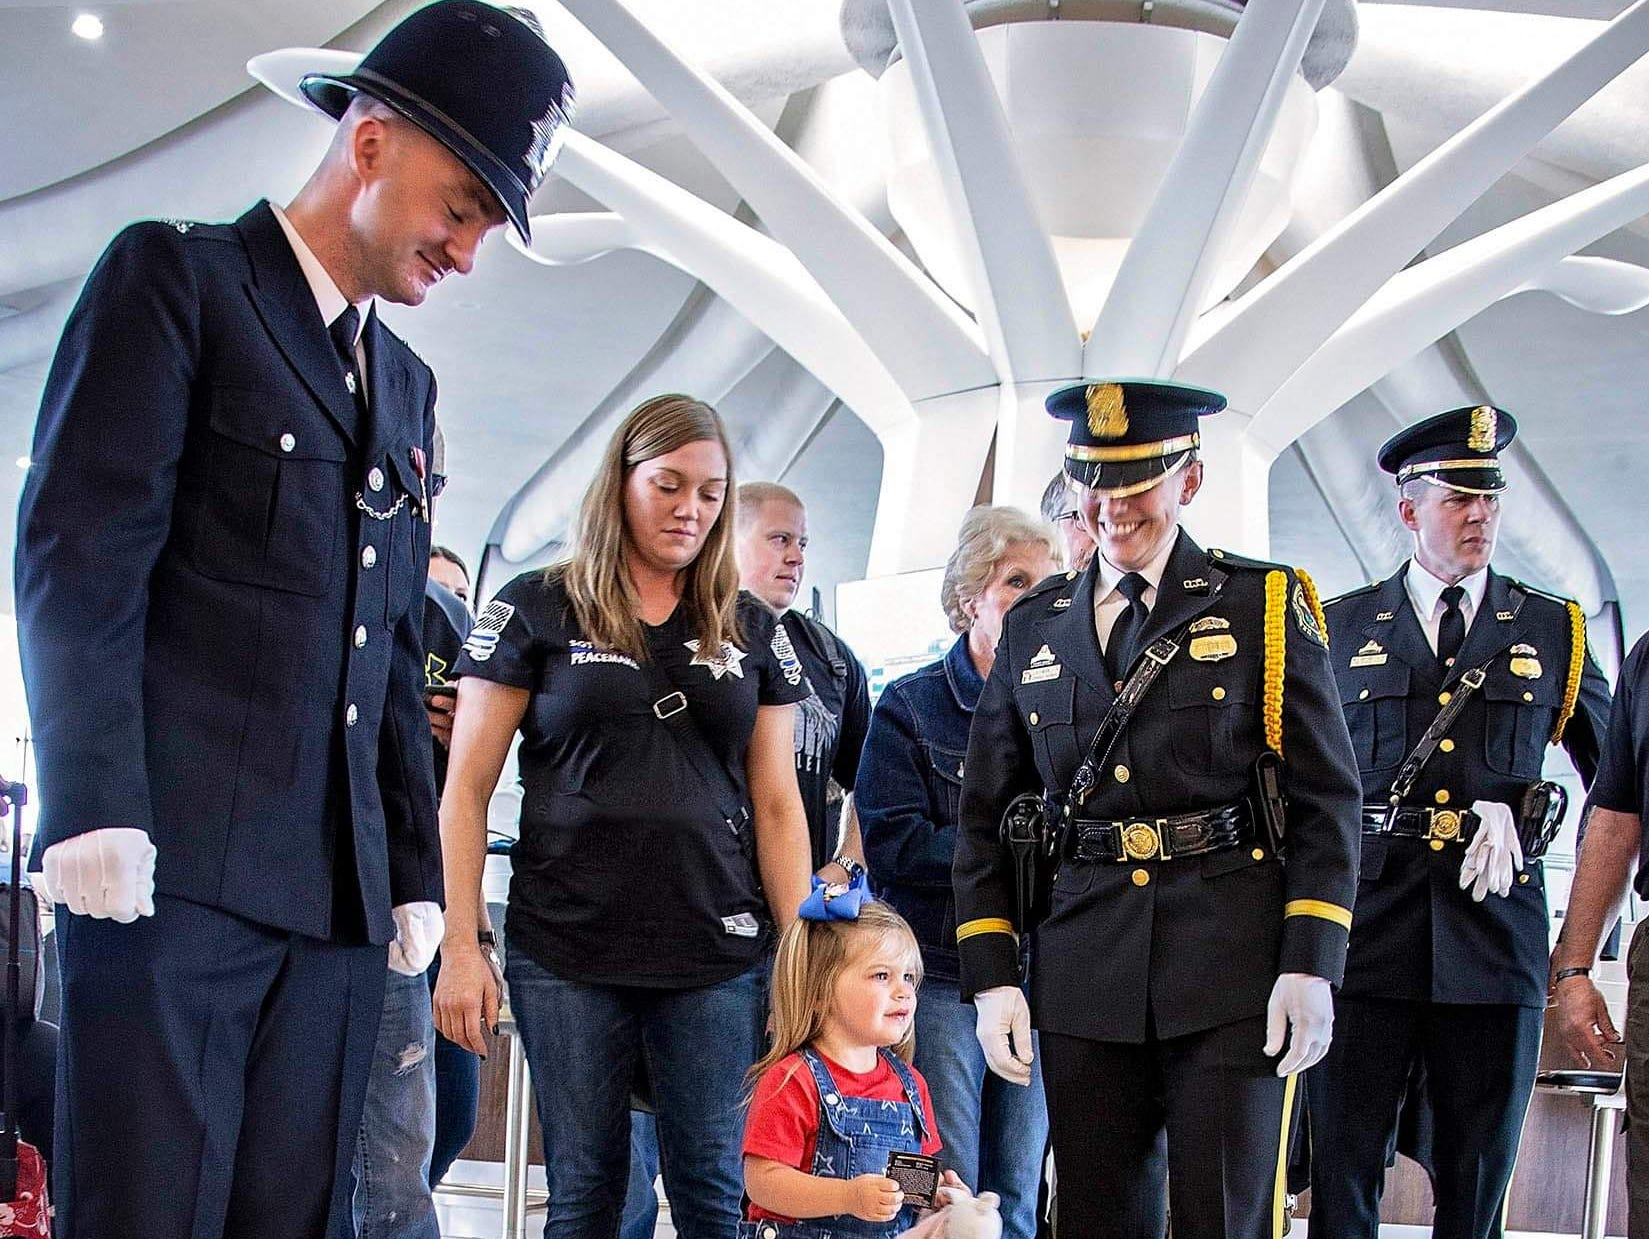 Dickson County Sheriff's Office Sgt. Daniel Baker, his widow Lisa Baker, and daughter Meredith were honored at the National Police Week in Washington, D.C.